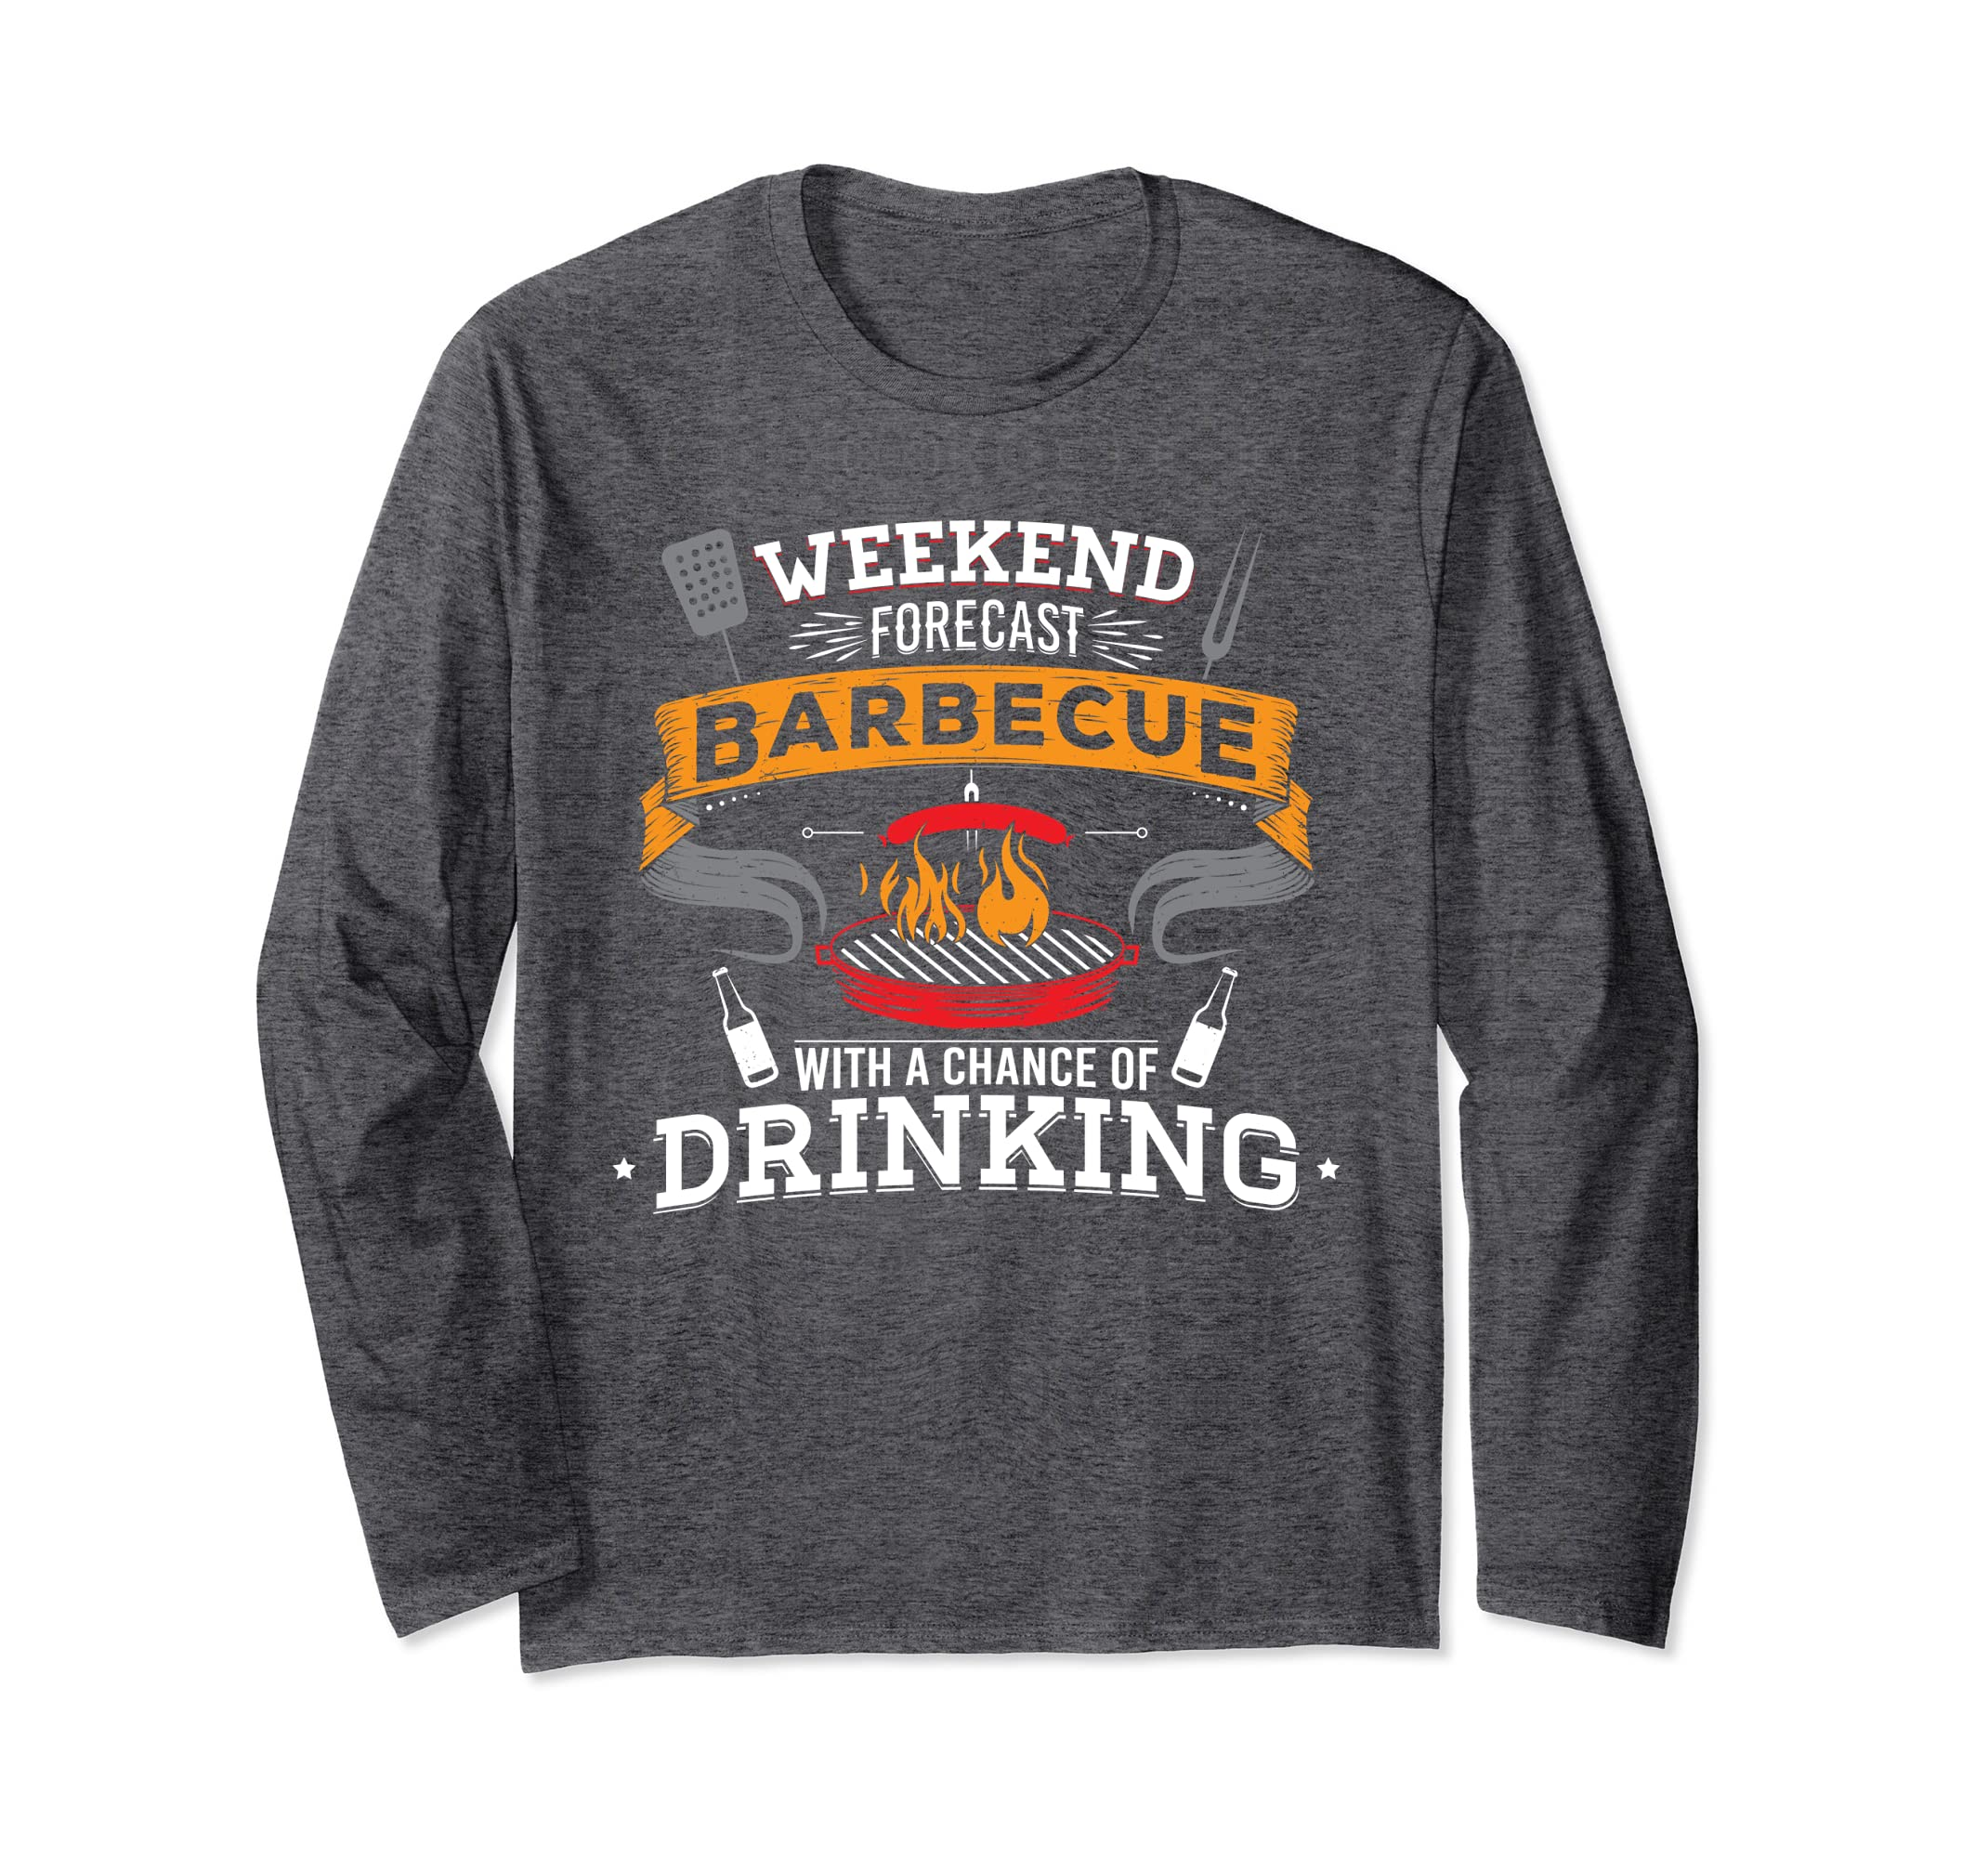 Weekend Forecast Barbecue Drinking BBQ Long Sleeve Shirt-ln